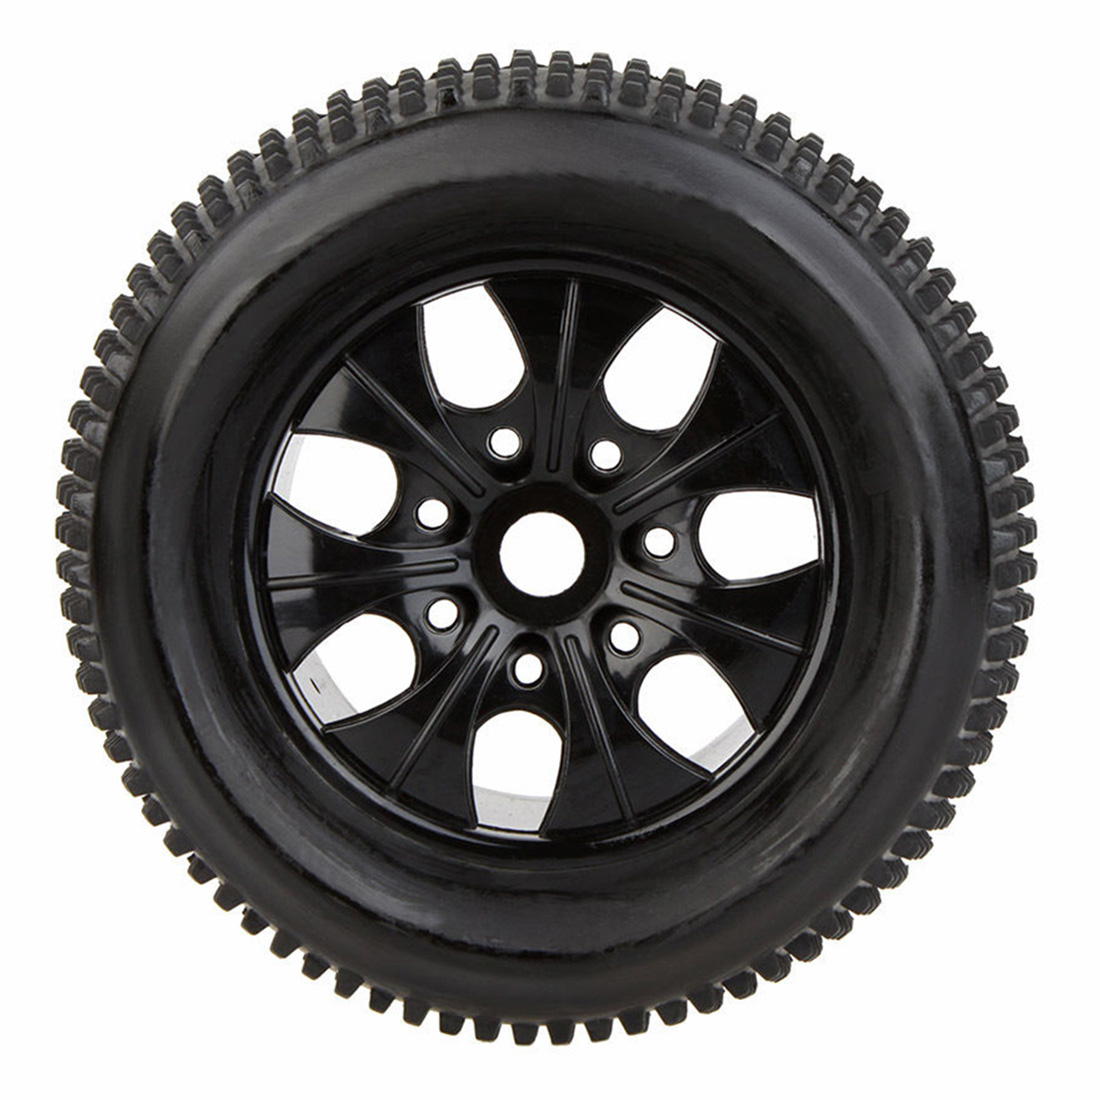 2Pcs RC 1/8 Car Wheel Rim and Tire 810011 fr Traxxas HSP Tamiya HPI RC Car 4pcs wheel rim tire set for 1 10 rc monster truck traxxas himoto hsp hpi tamiya kyosho remote control toy car 1 10 tyre parts